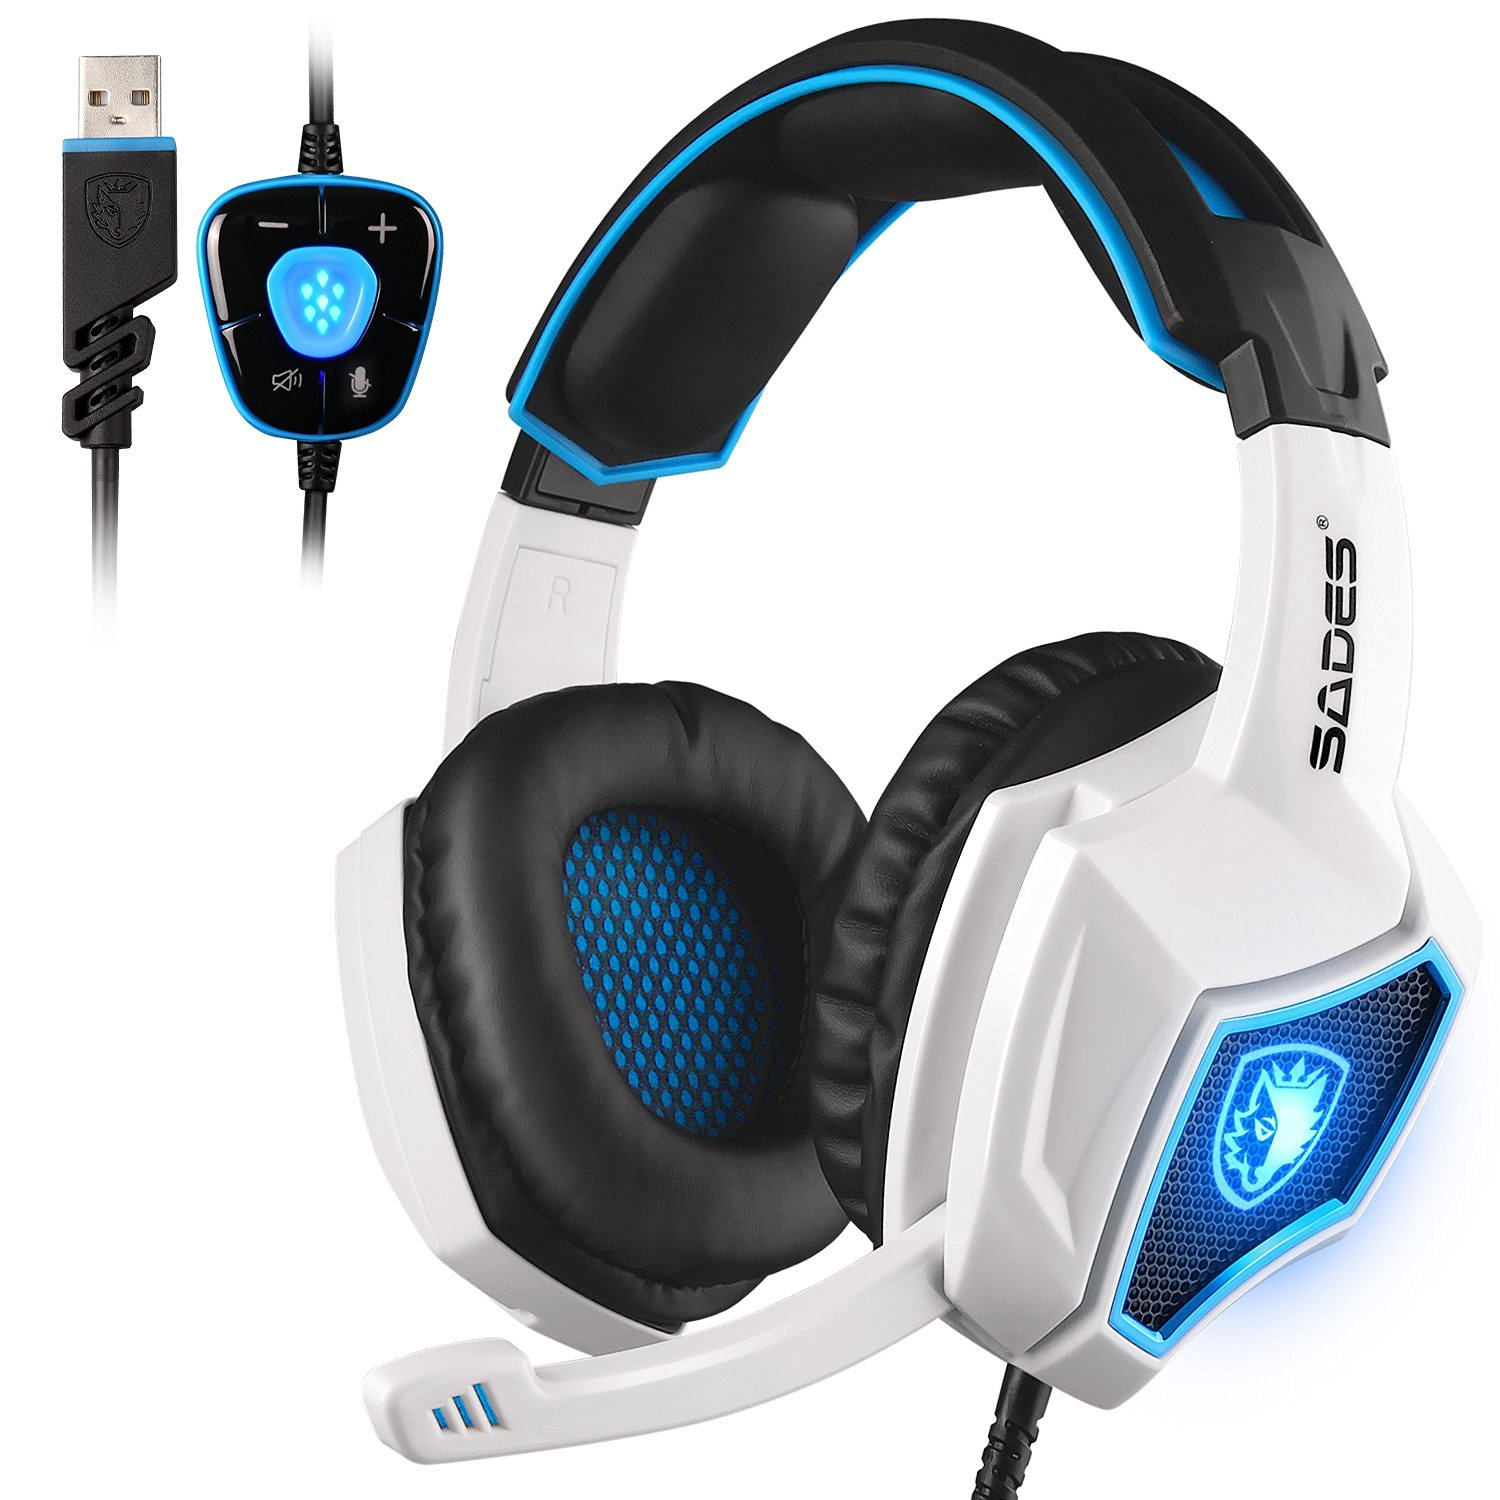 SADES Spirit Wolf 7.1 Surround Sound Stereo USB Gaming Headset with MIC Over-the-Ear Noise Isolating Volume Control For PC Gamers